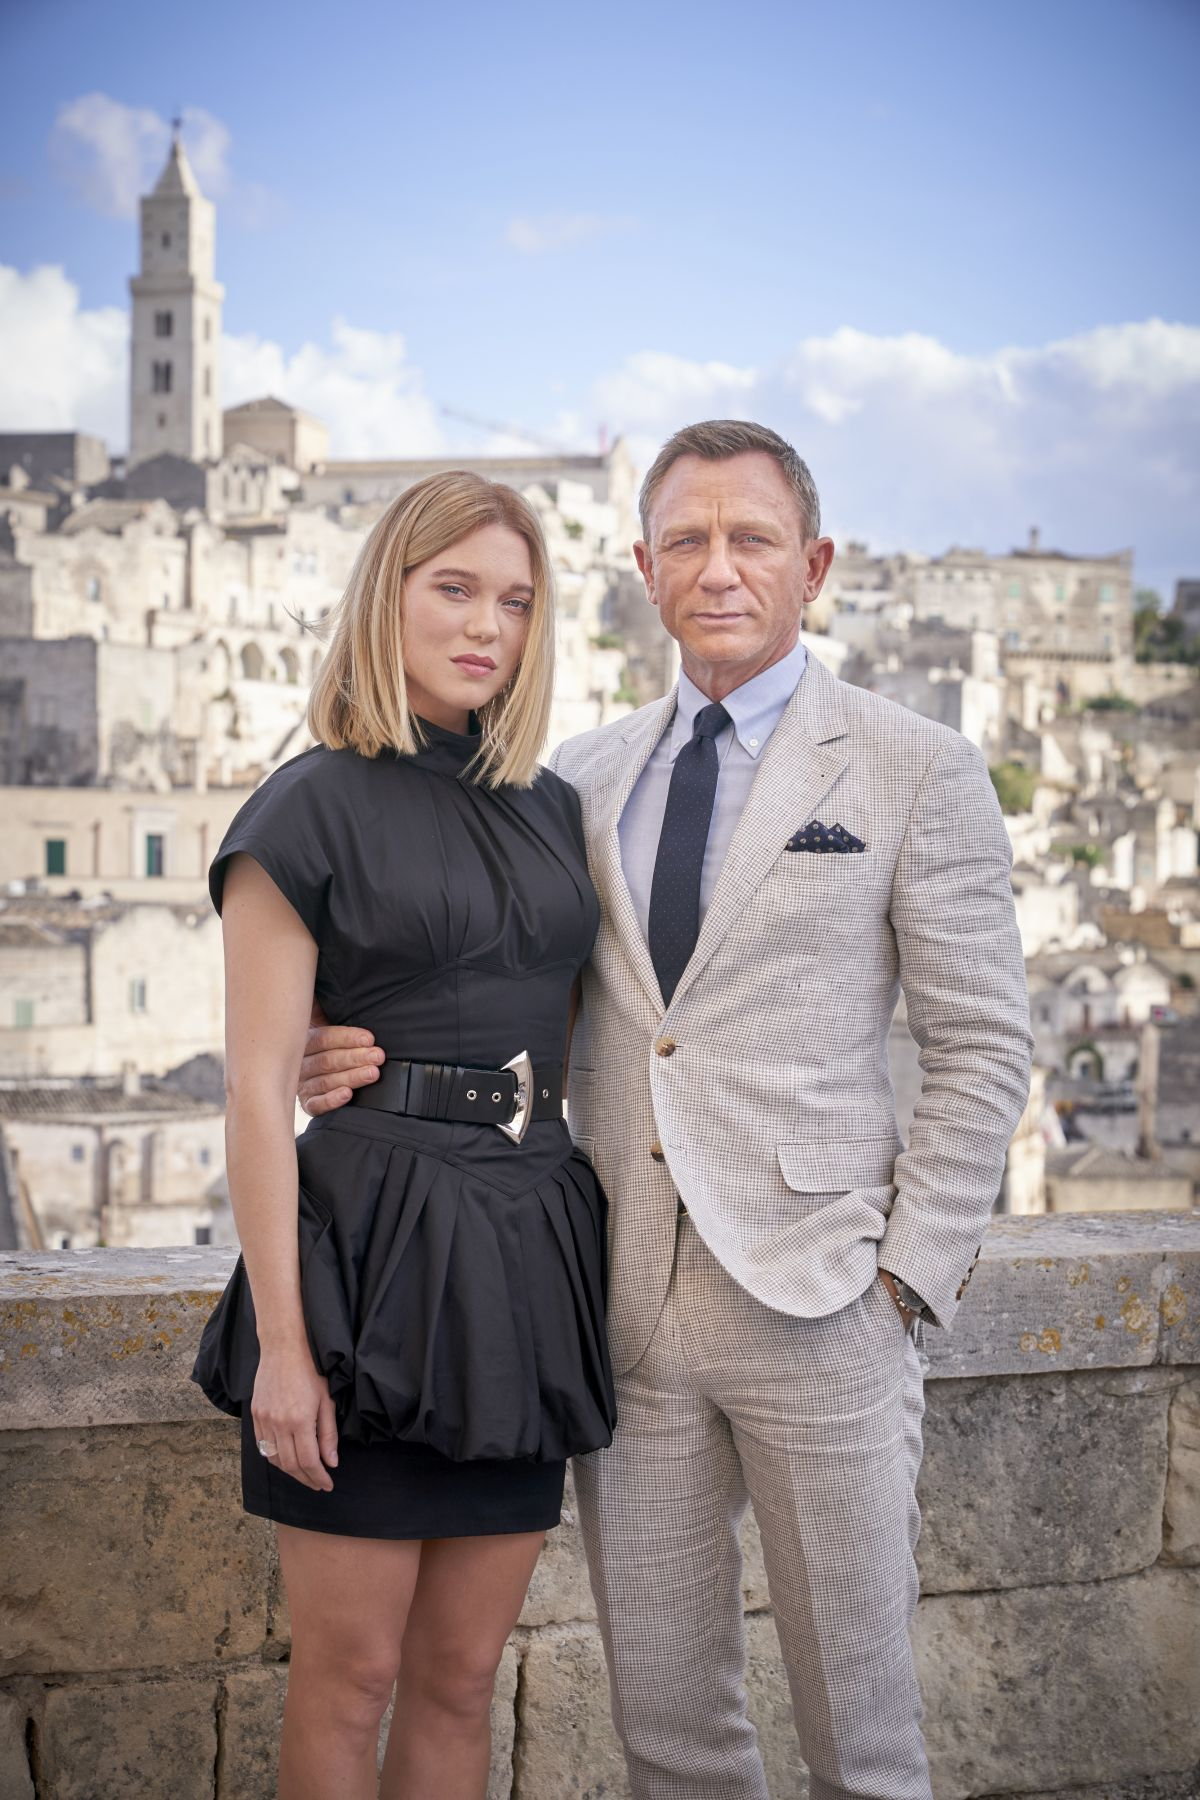 LEA SEYDOUX and Daniel Craig on Location in Italy for ...